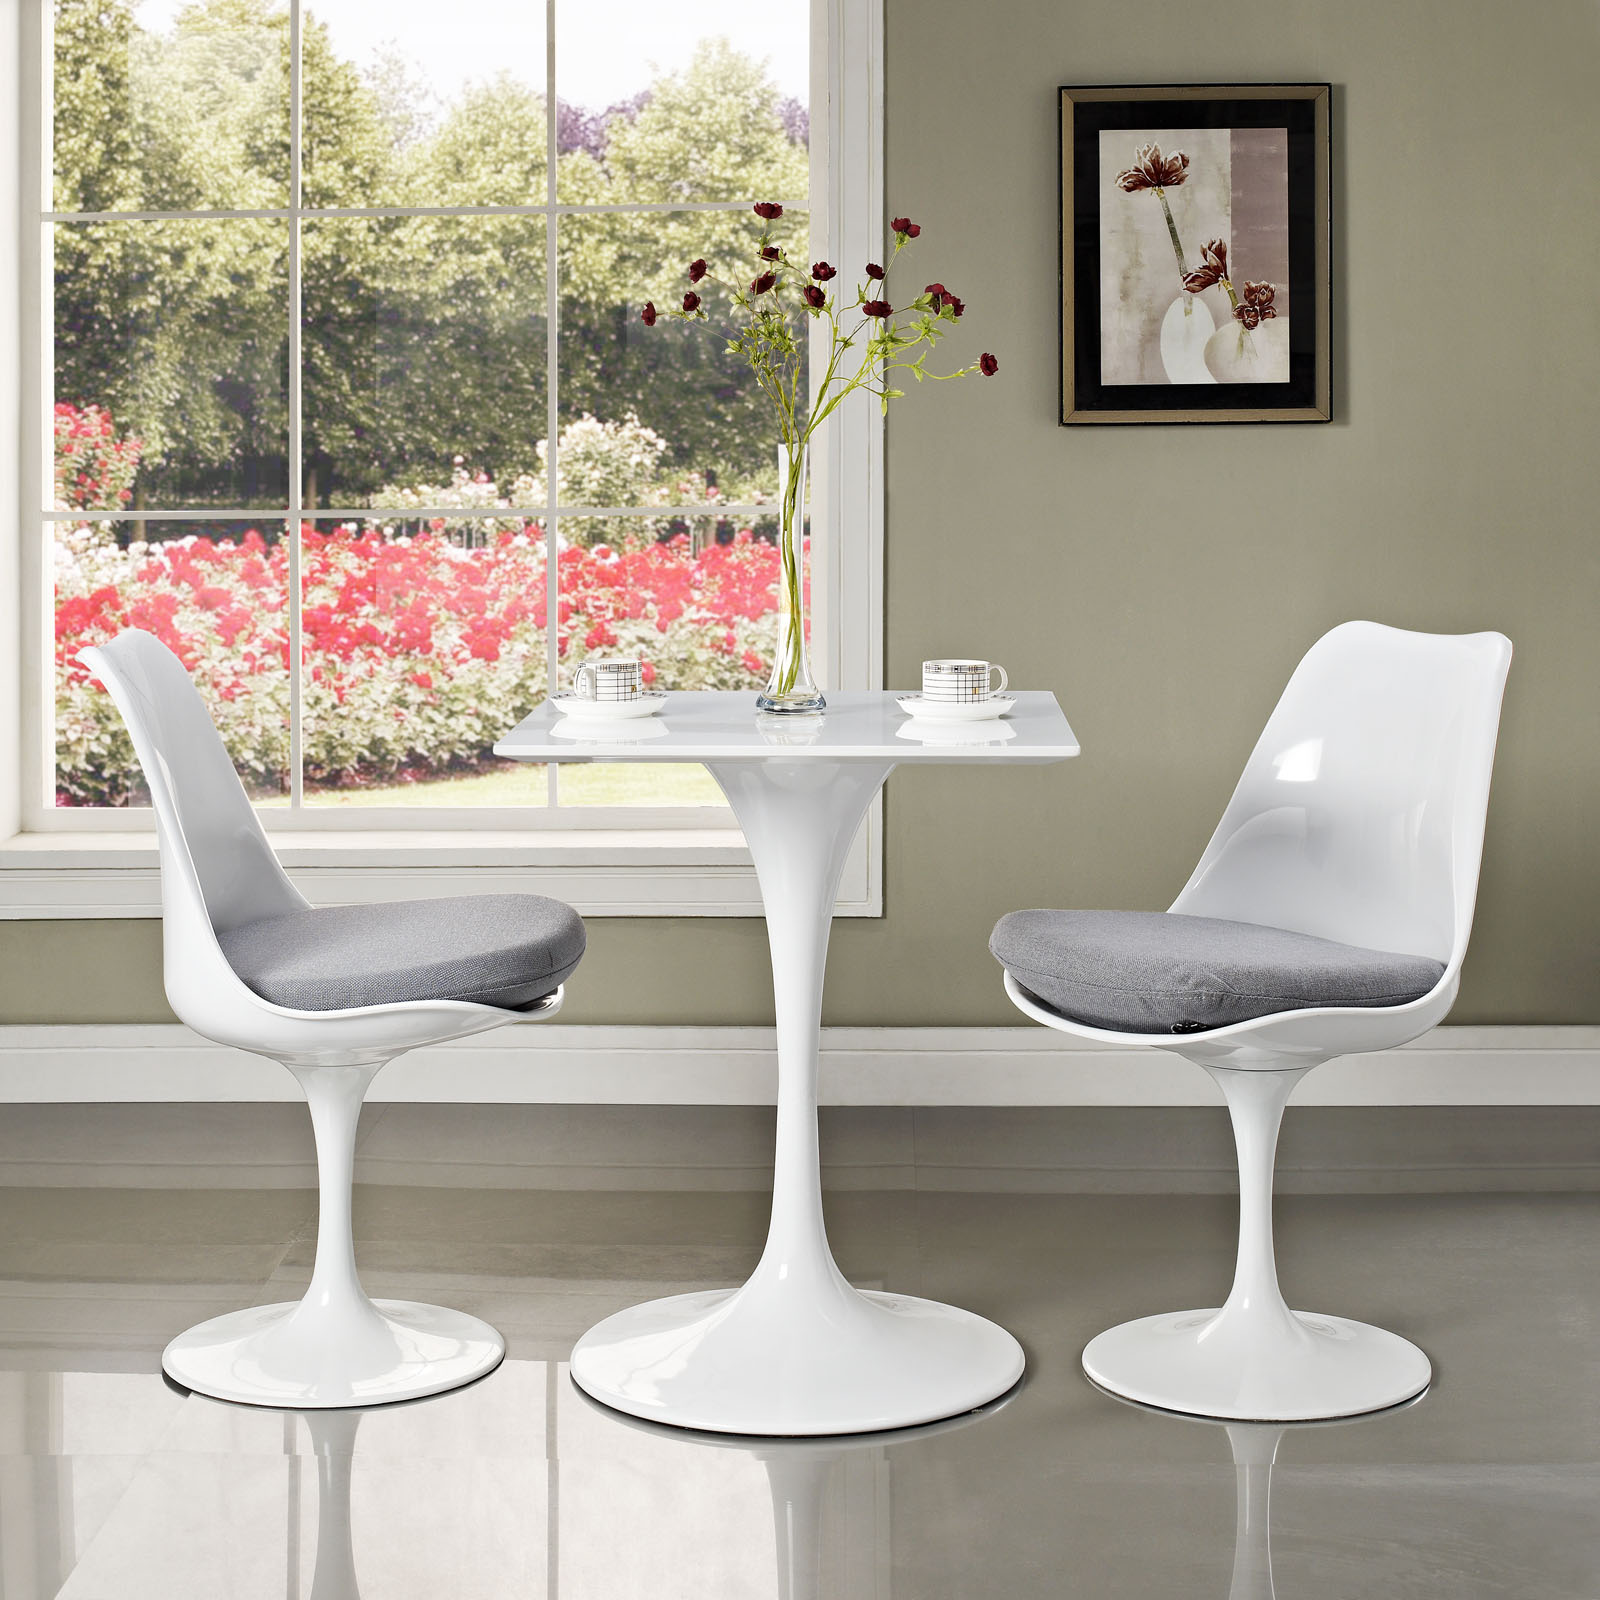 Tulip Table And Chairs Reproduction Home Design Ideas - Best saarinen tulip table reproduction